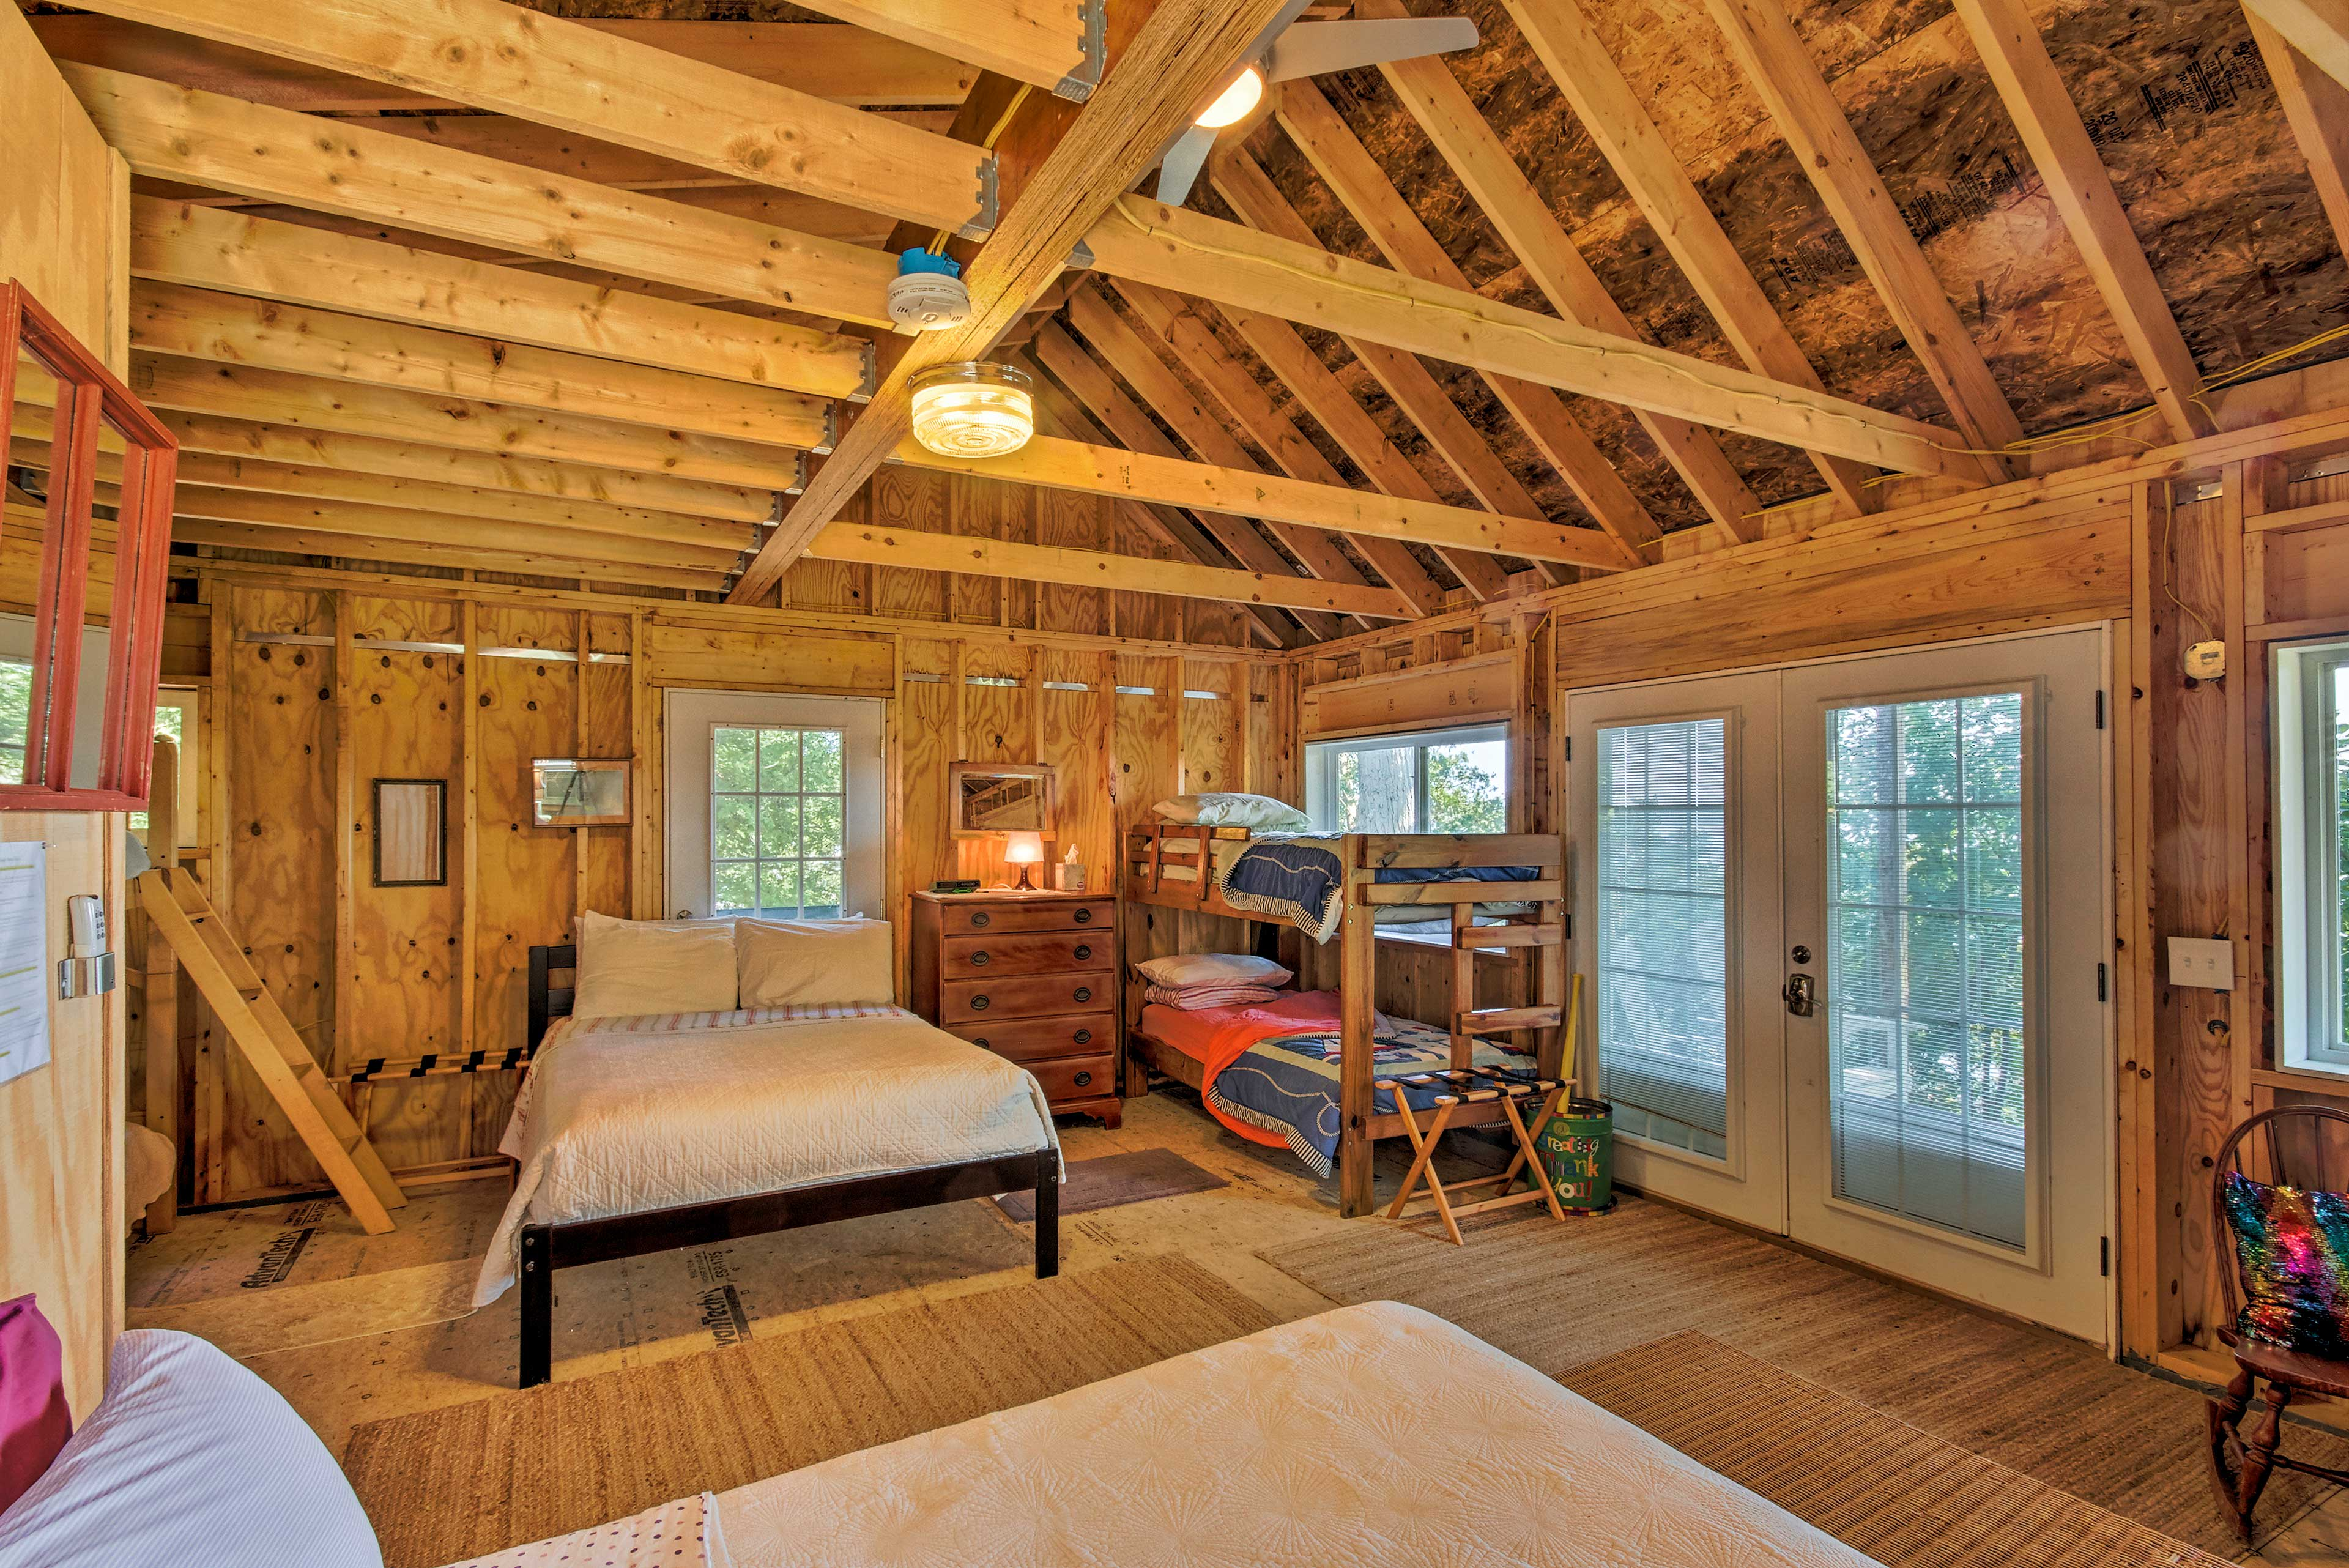 Traveling with kids? They'll love the bunkhouse!